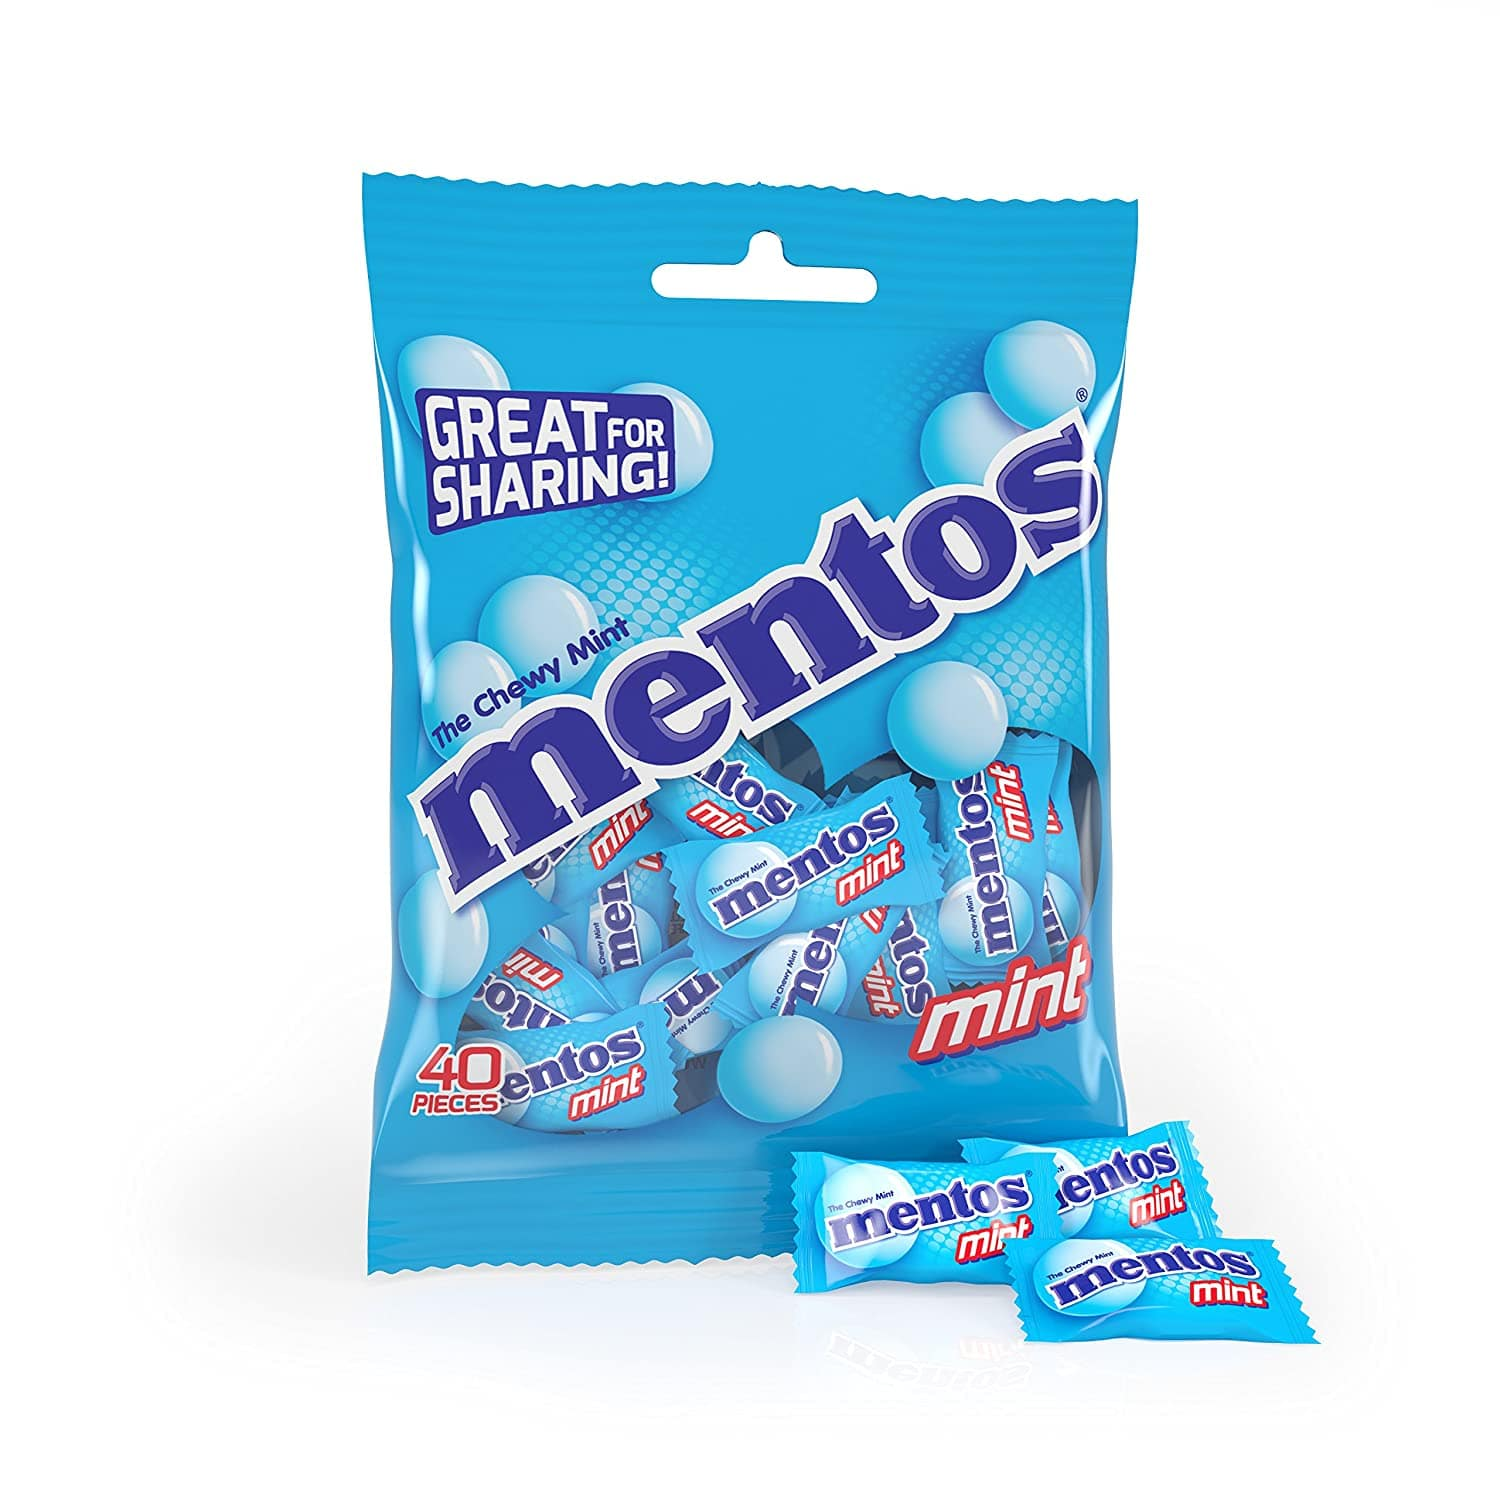 12-pack Mentos Chewy Mint Candy (40-piece Bags) - $13.29 with S&S